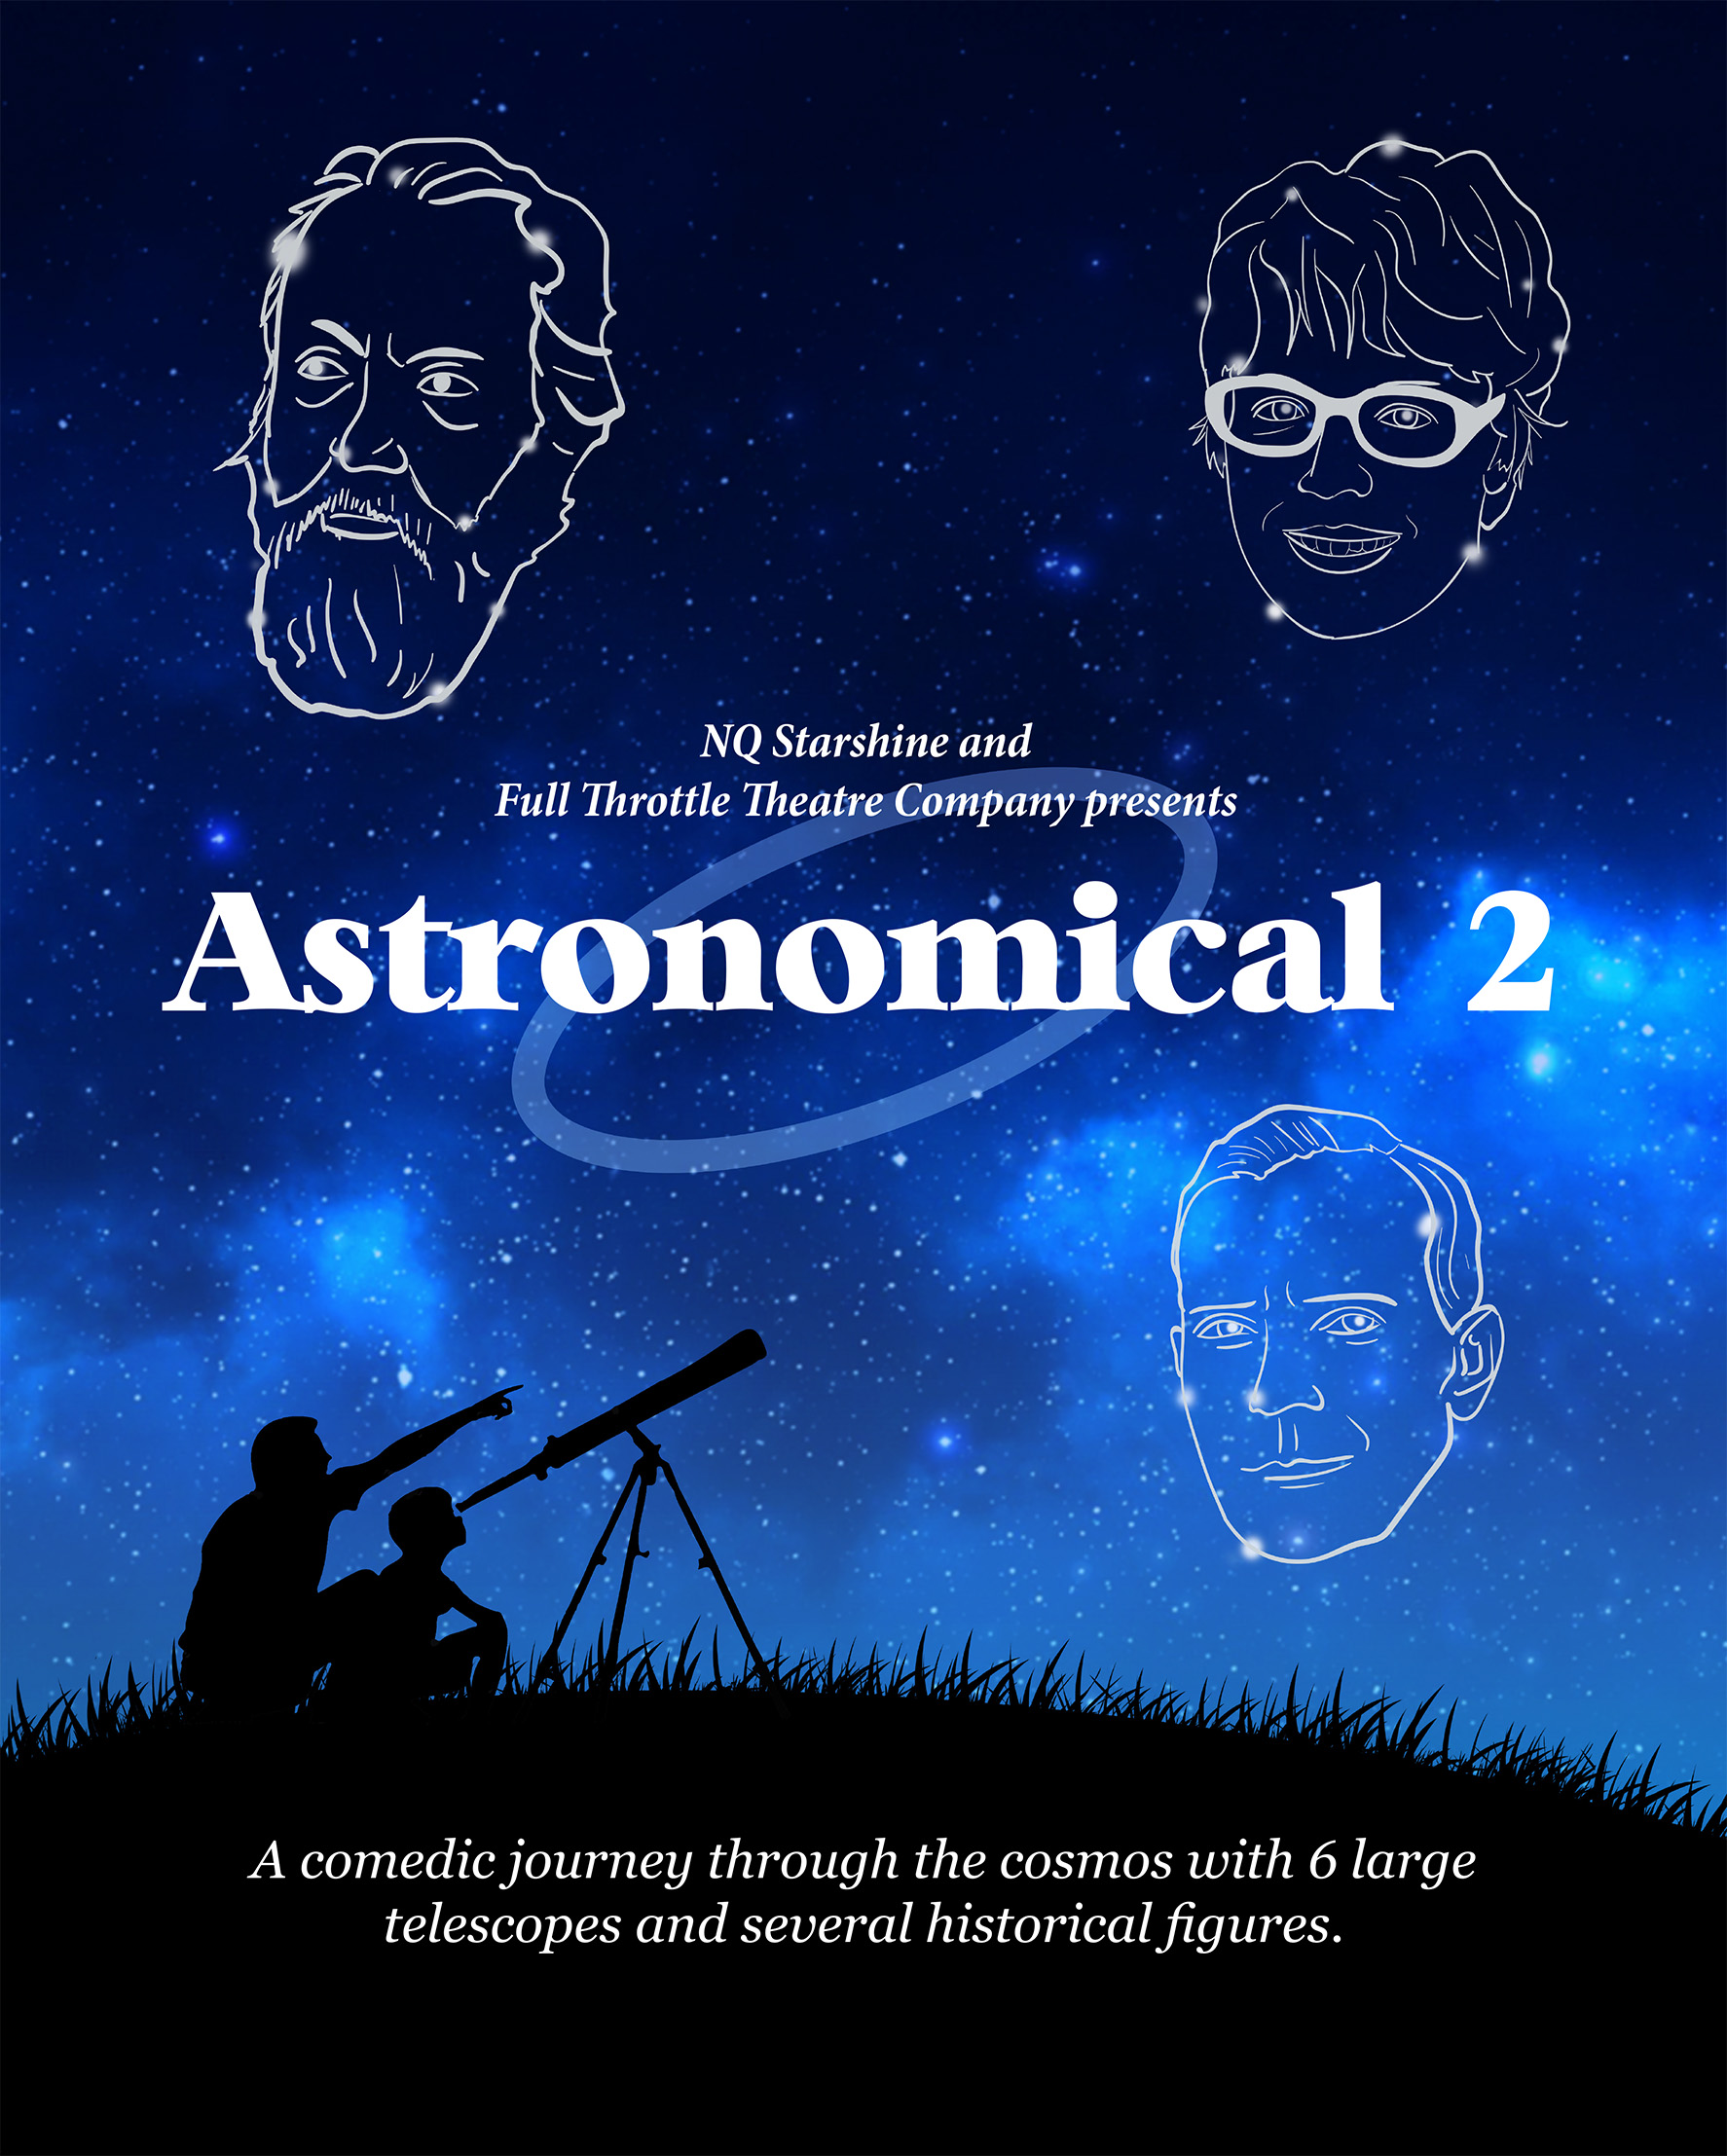 Astronomical 2